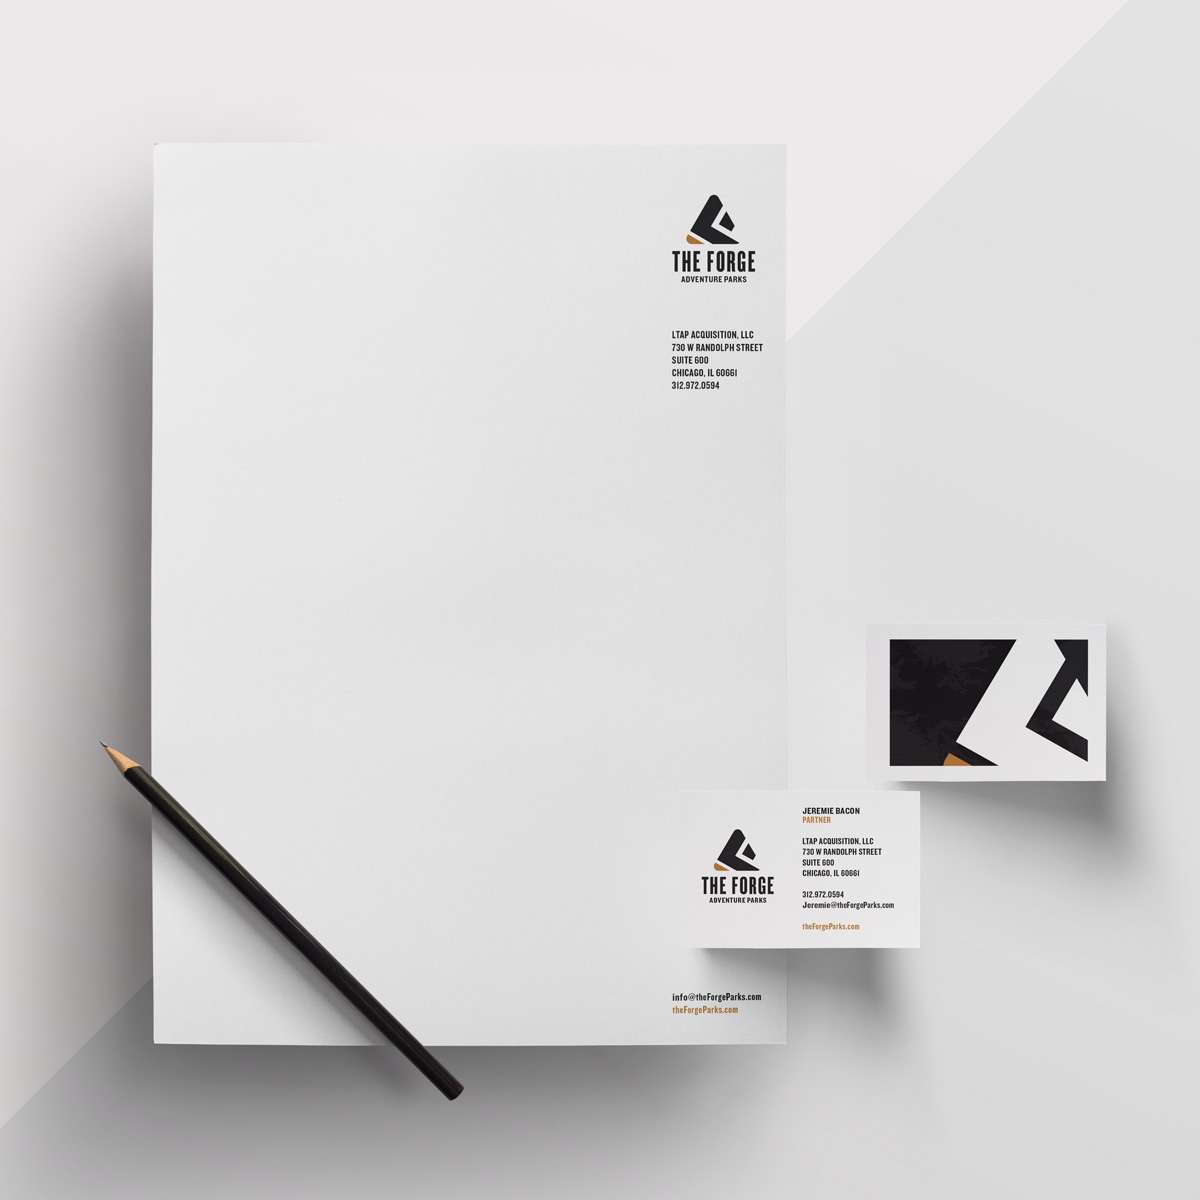 Stationery design for The Forge novel outdoor experience